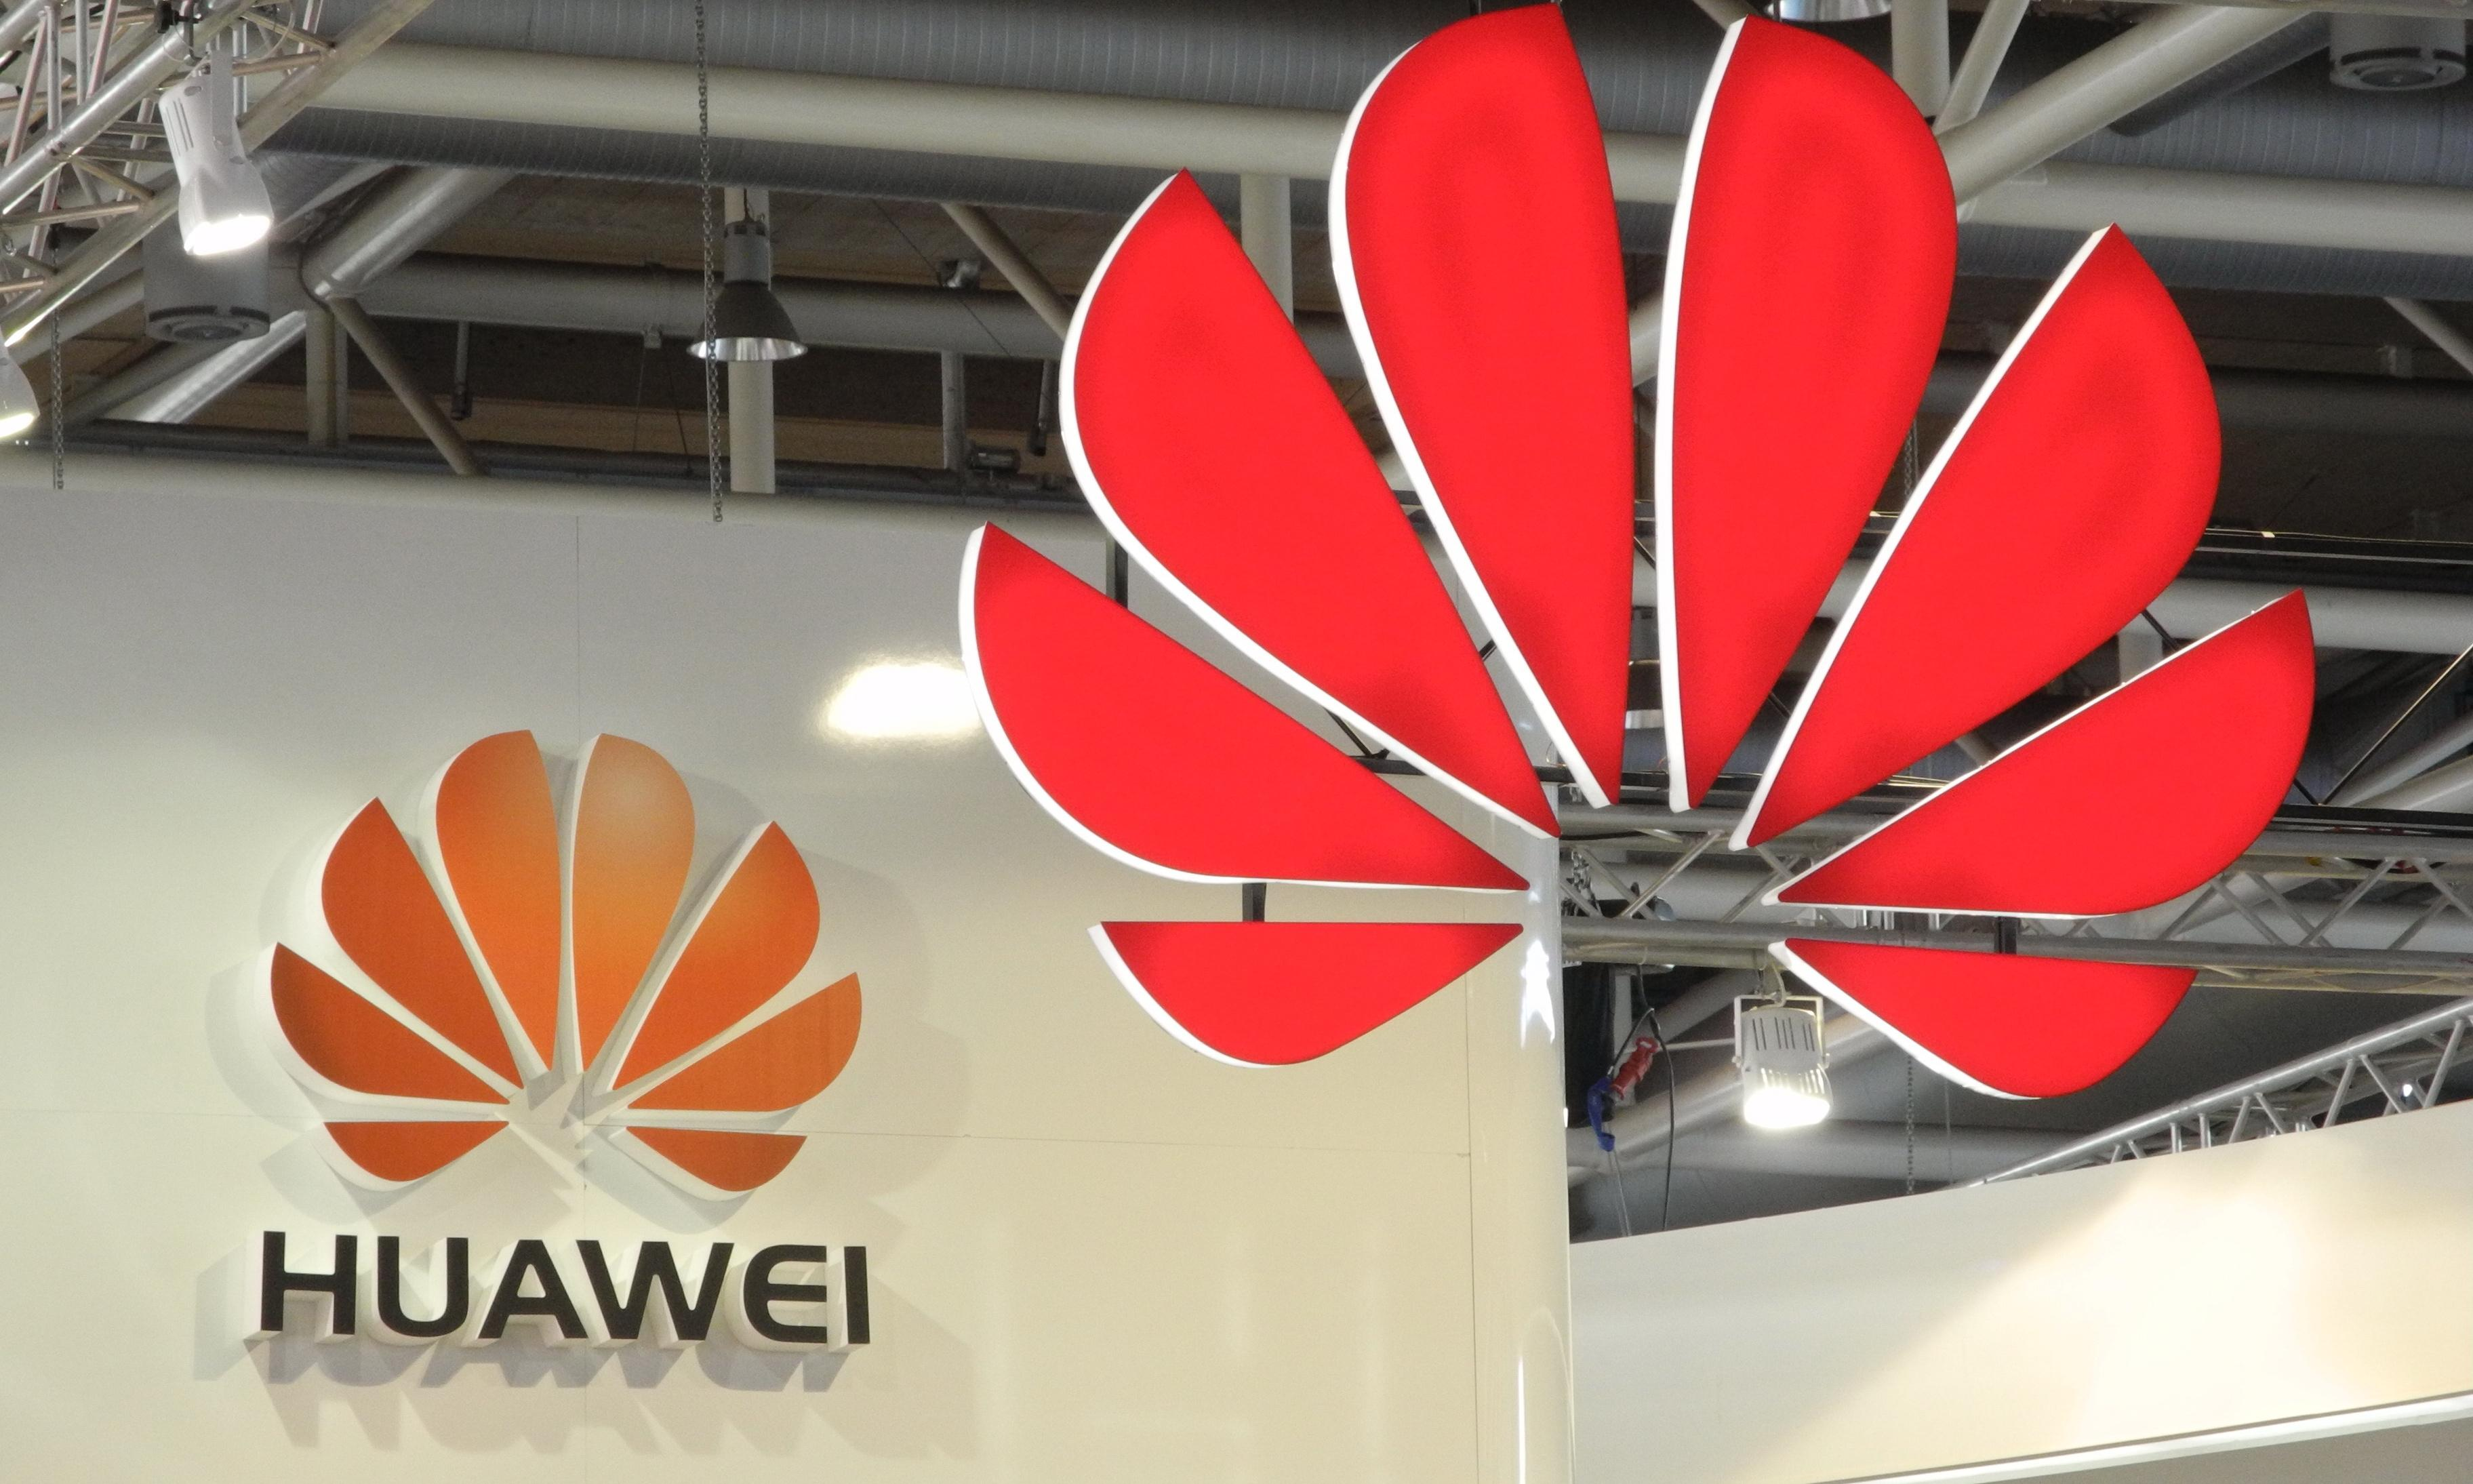 'There will be conflict': Huawei founder says US underestimates company's strength